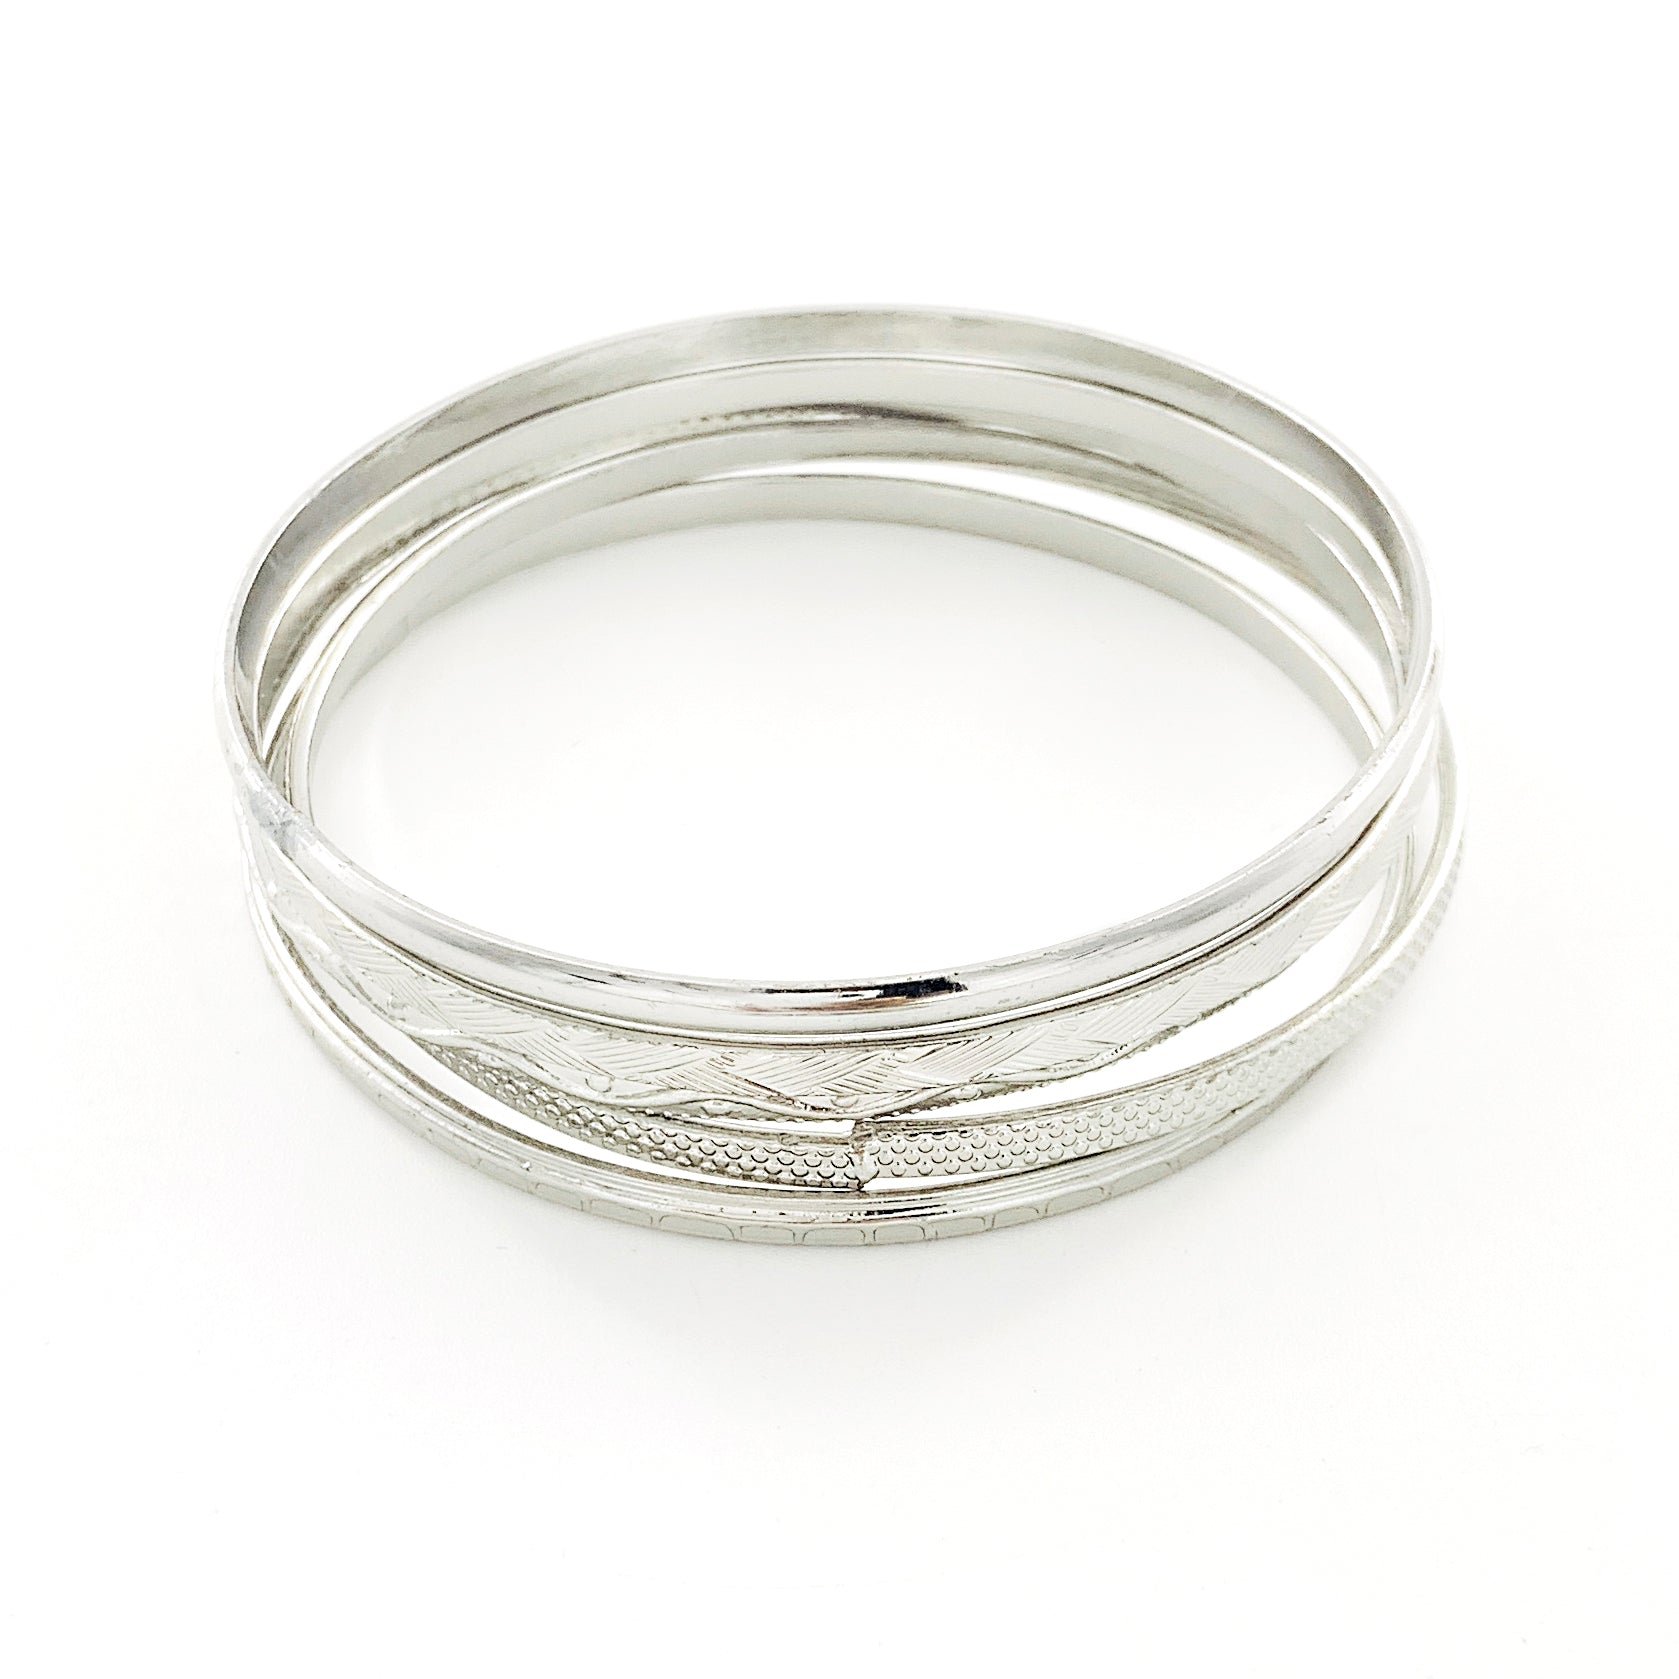 Thin silver bangles with textured patterns